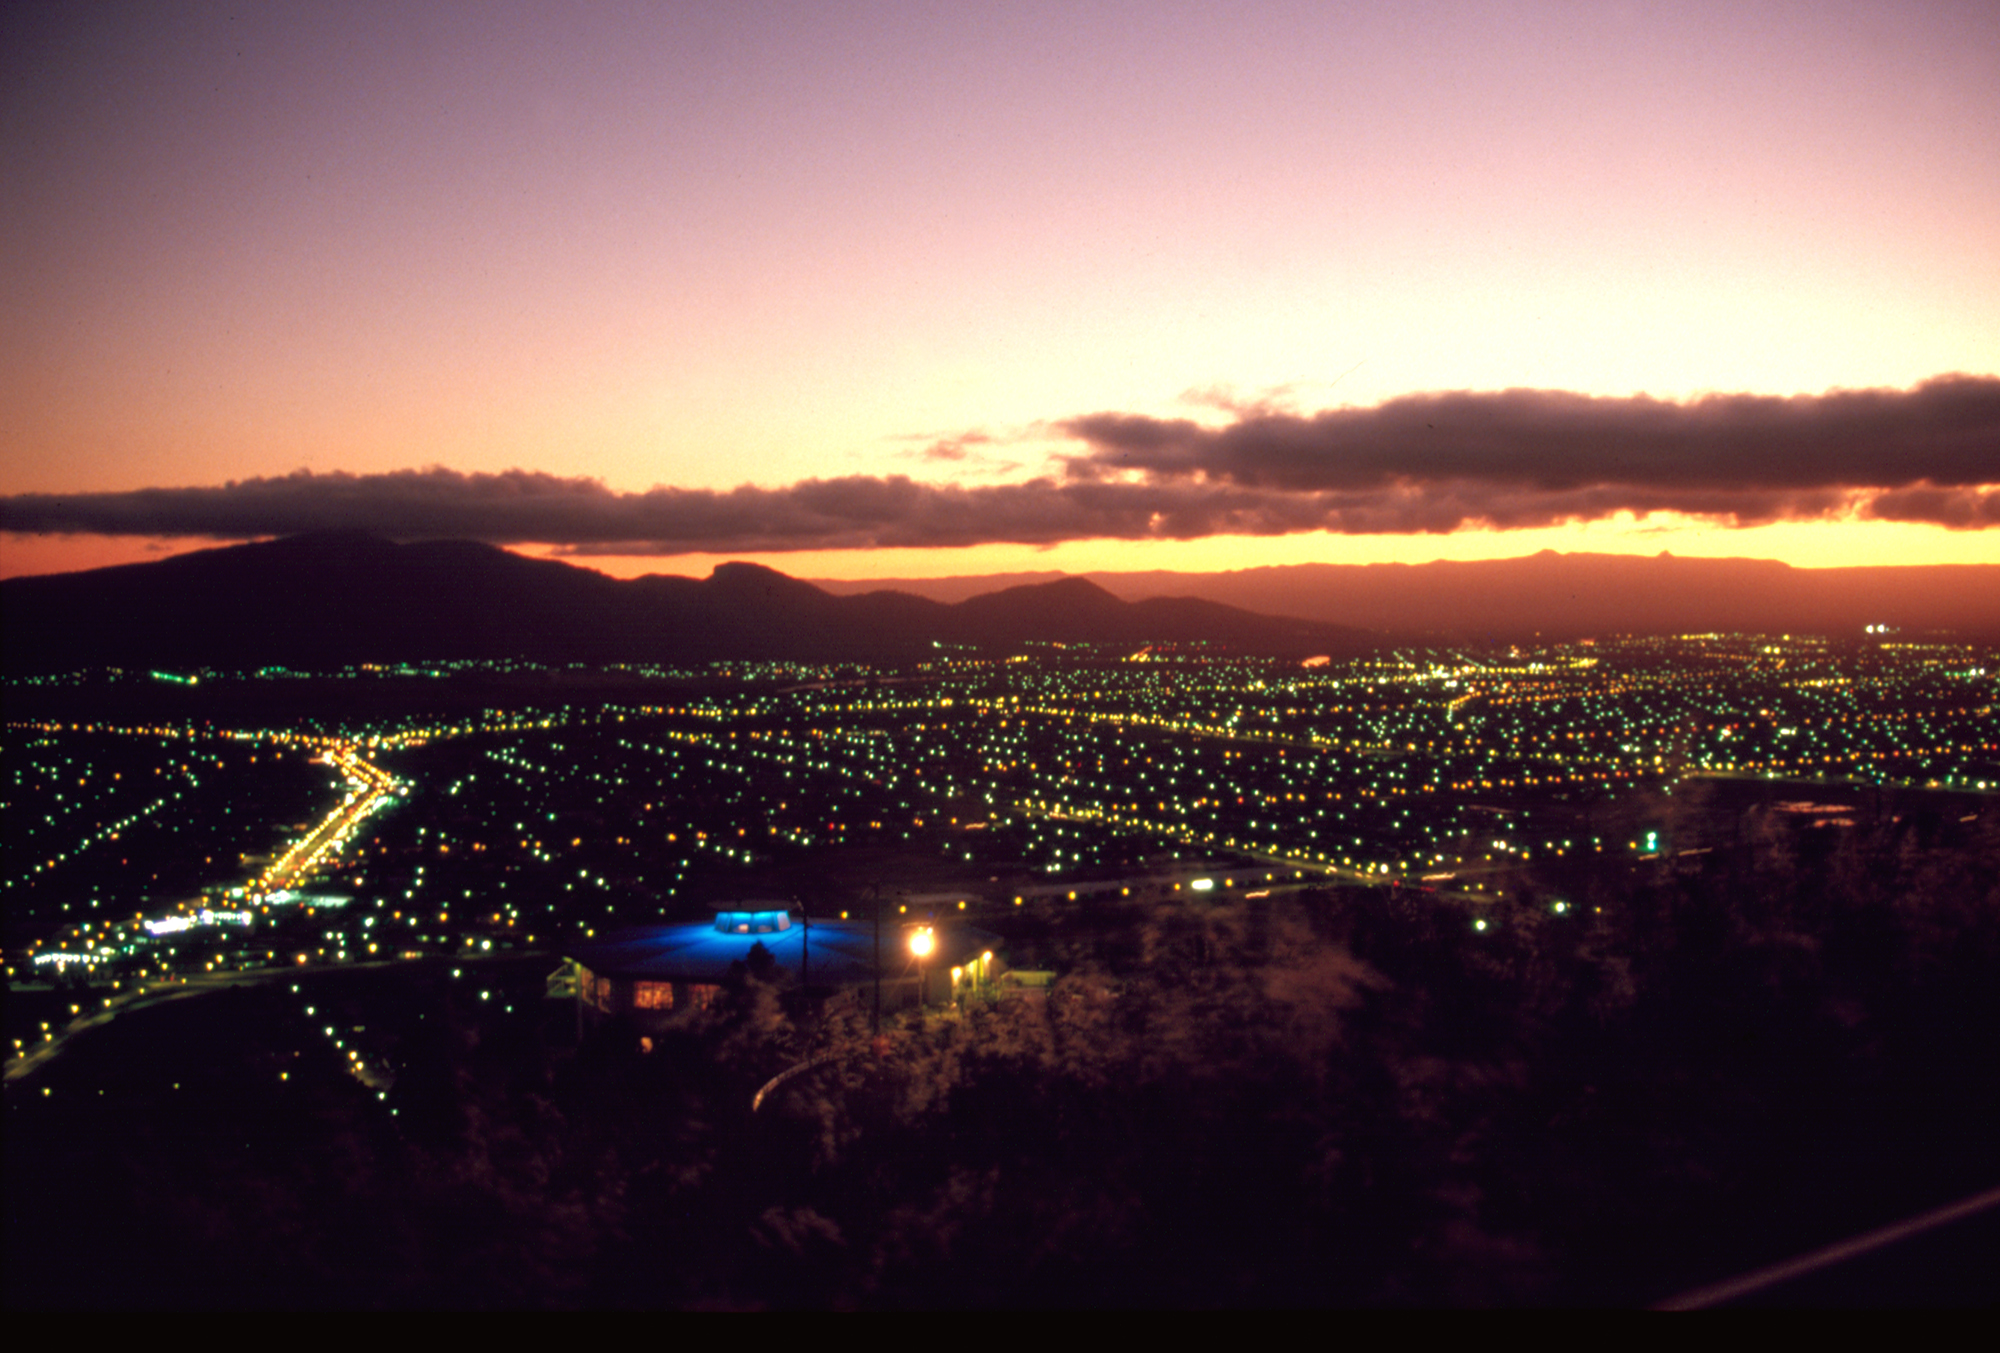 City lights of Townsville twinkle as the sun disappears below the horizon 1985